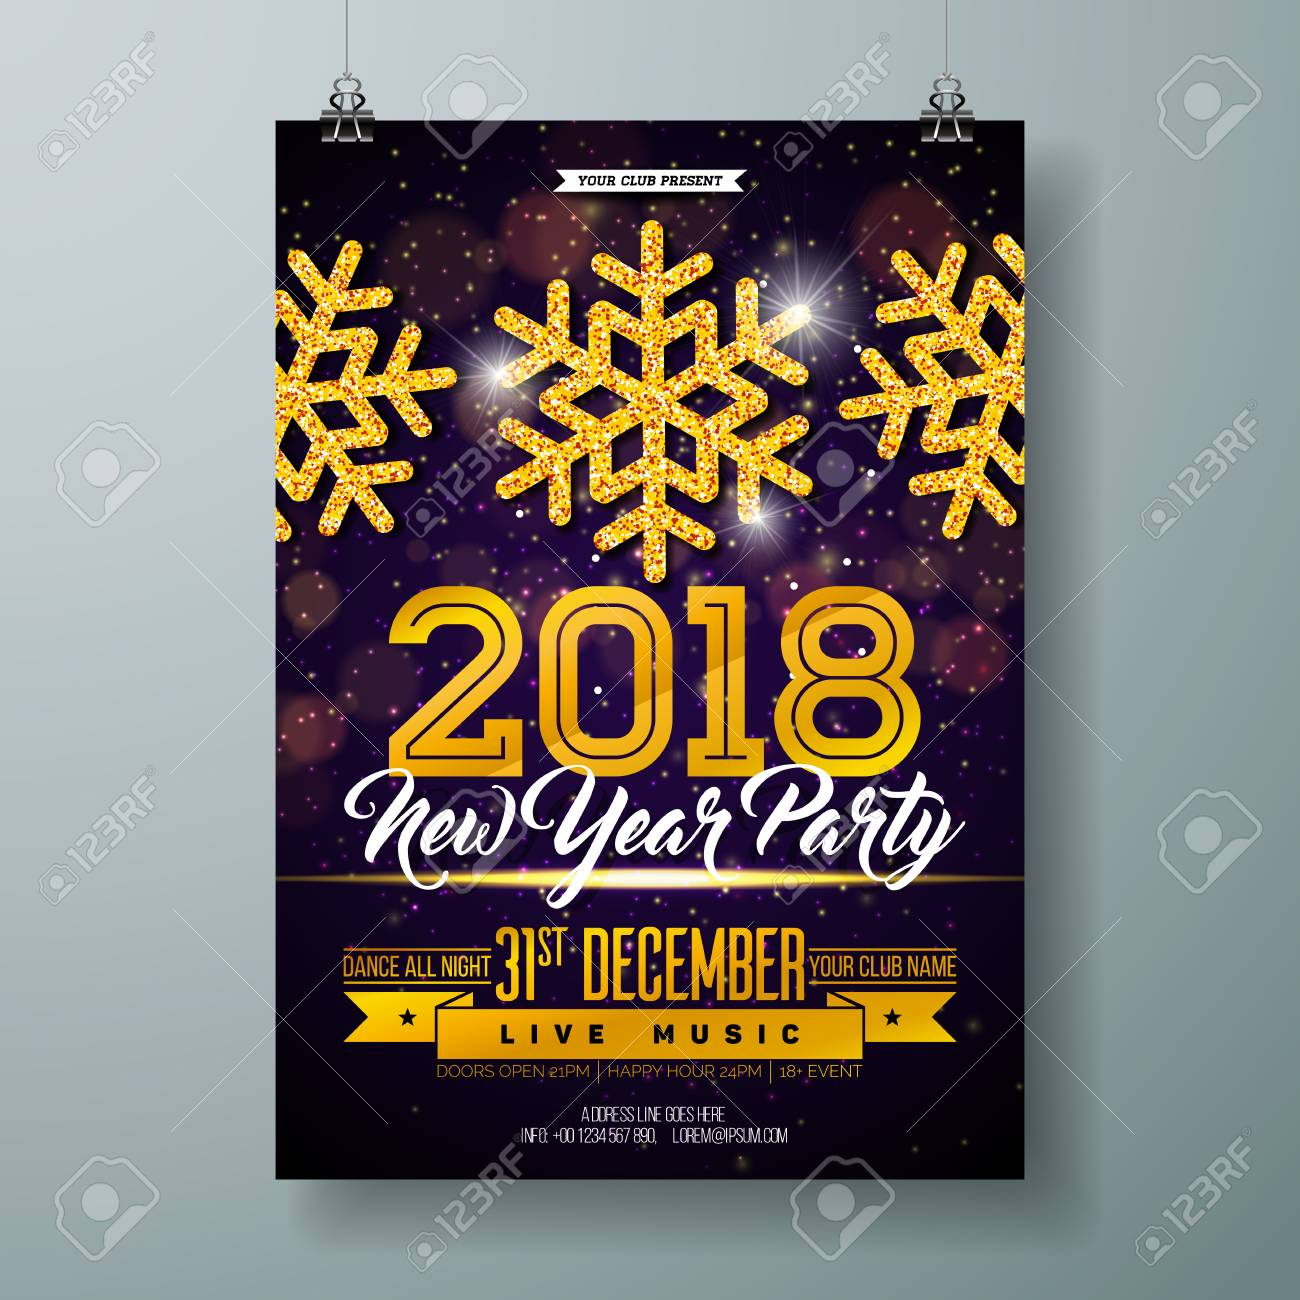 2018 new year party celebration poster template illustration with gold glittered snowflake on shiny background